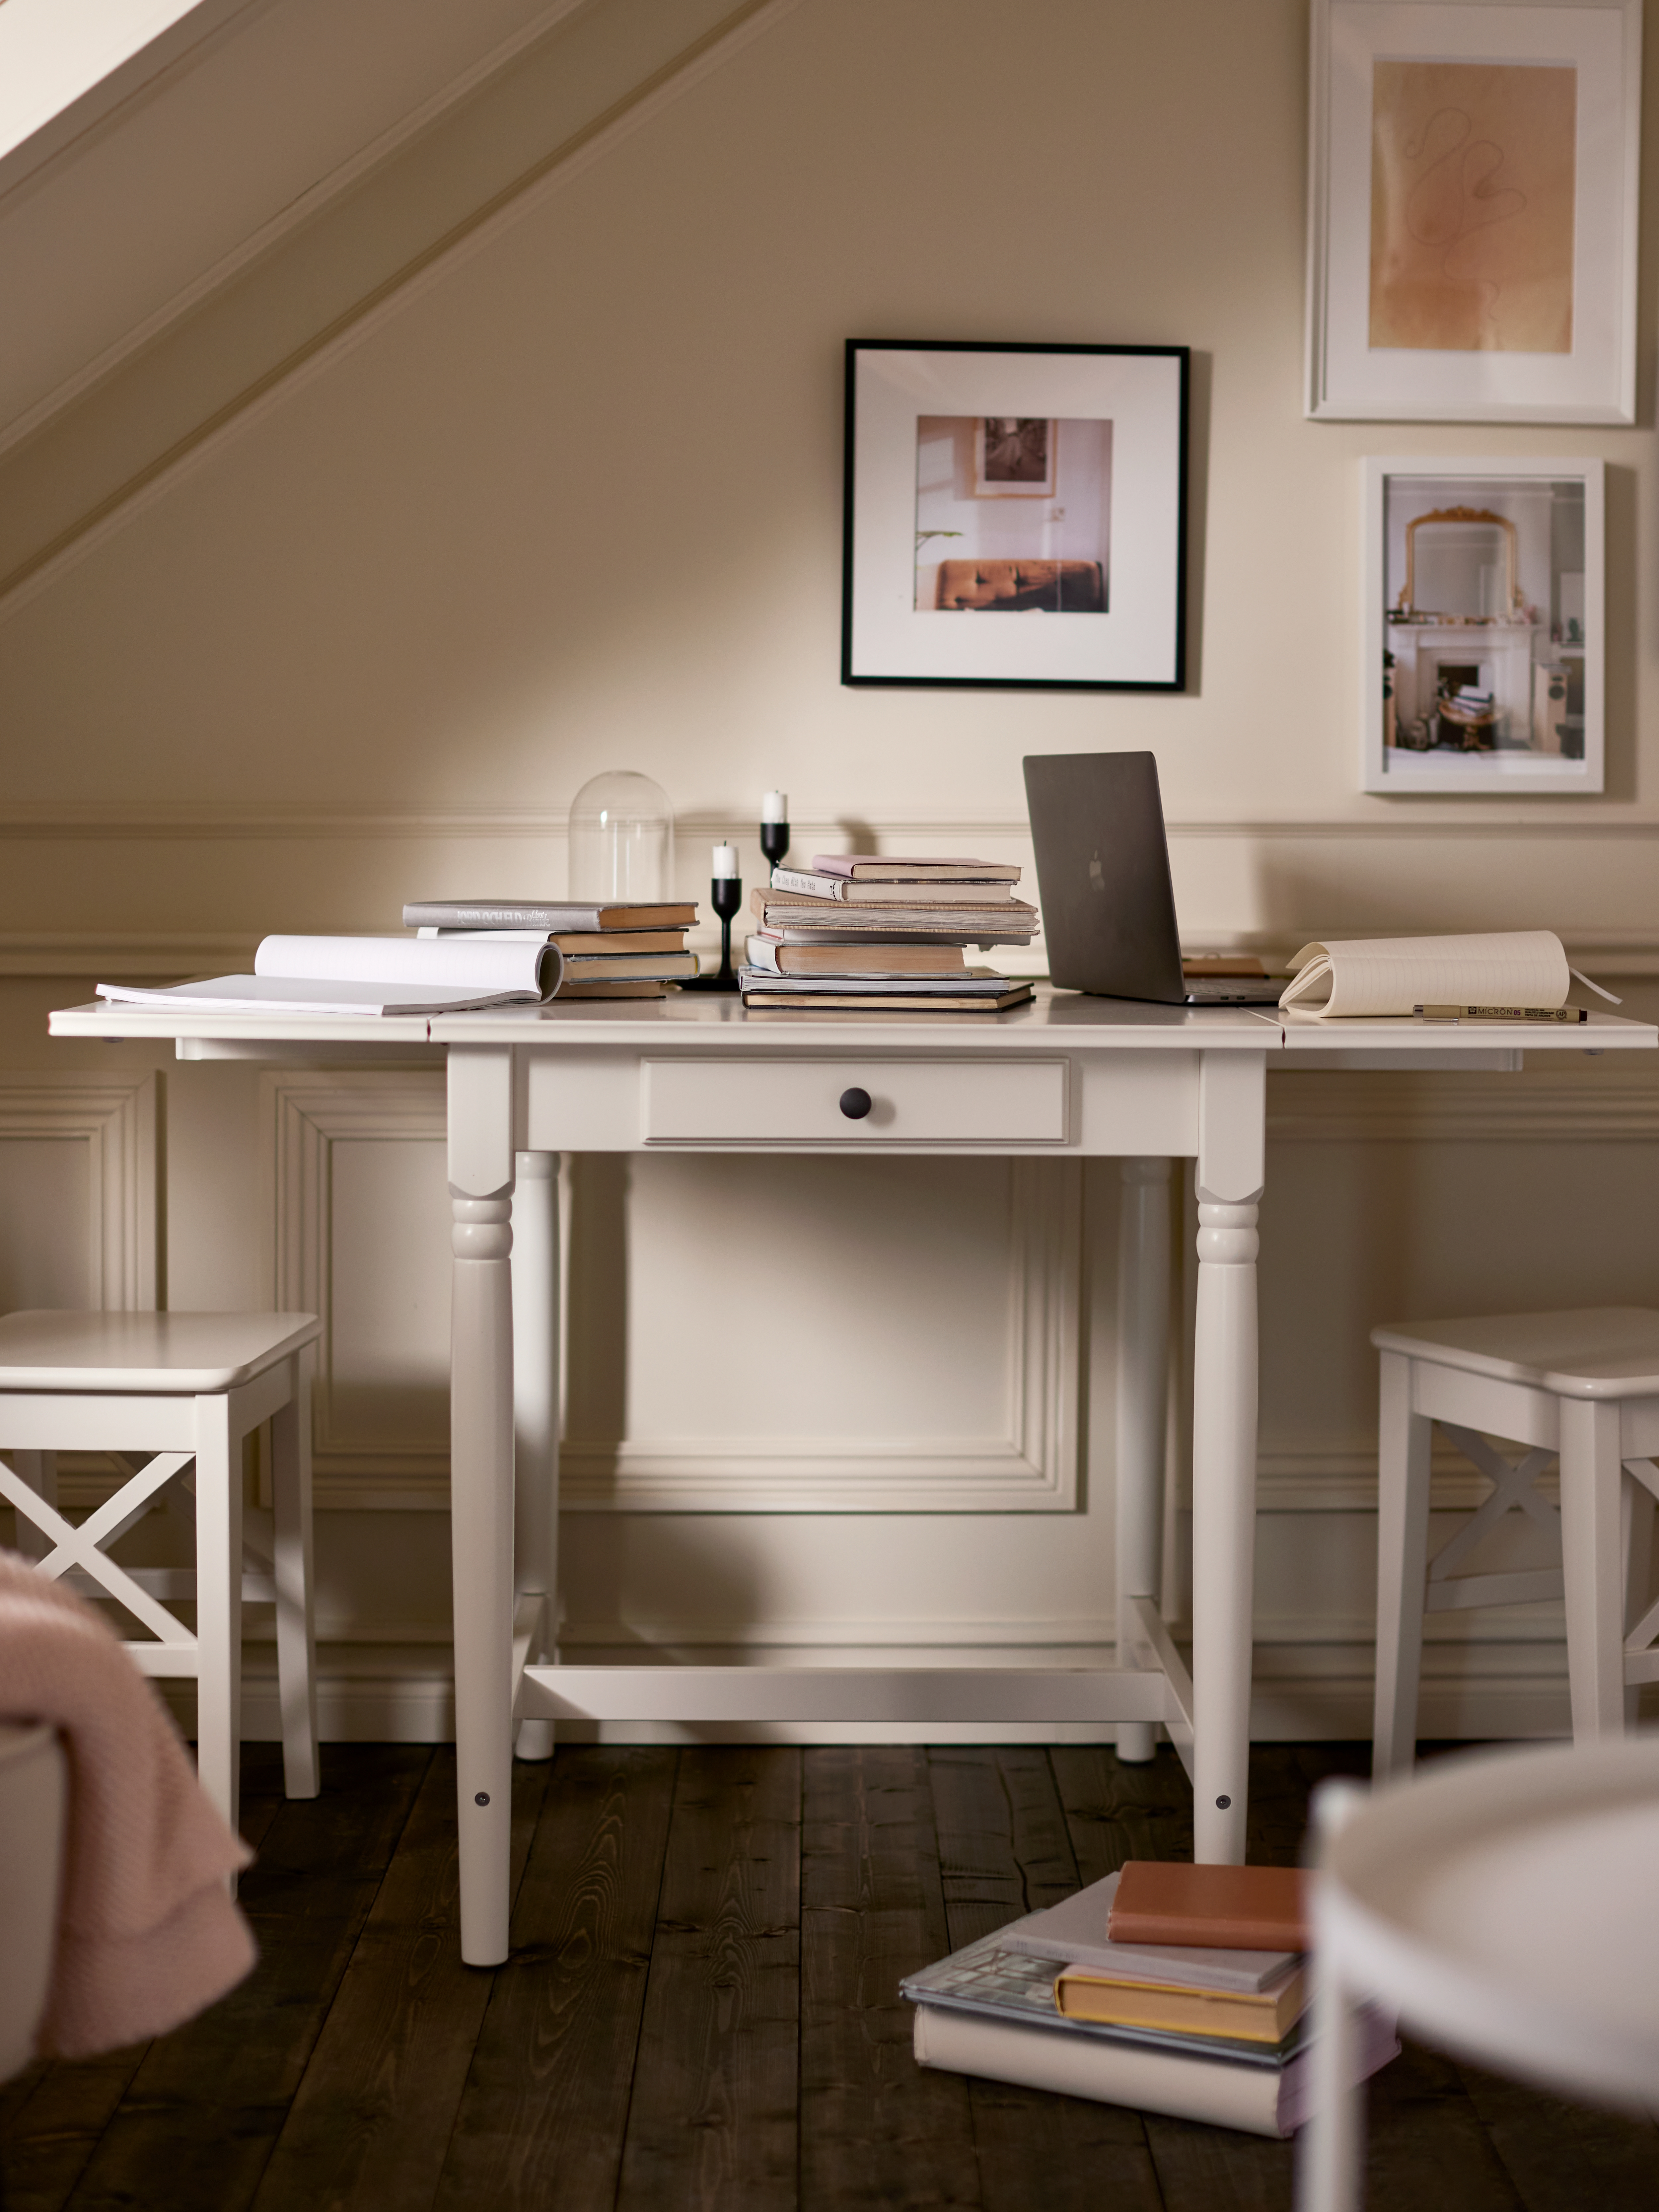 A white INGATORP drop-leaf table with books and a computer on the tabletop, by a bright wall with framed pictures.